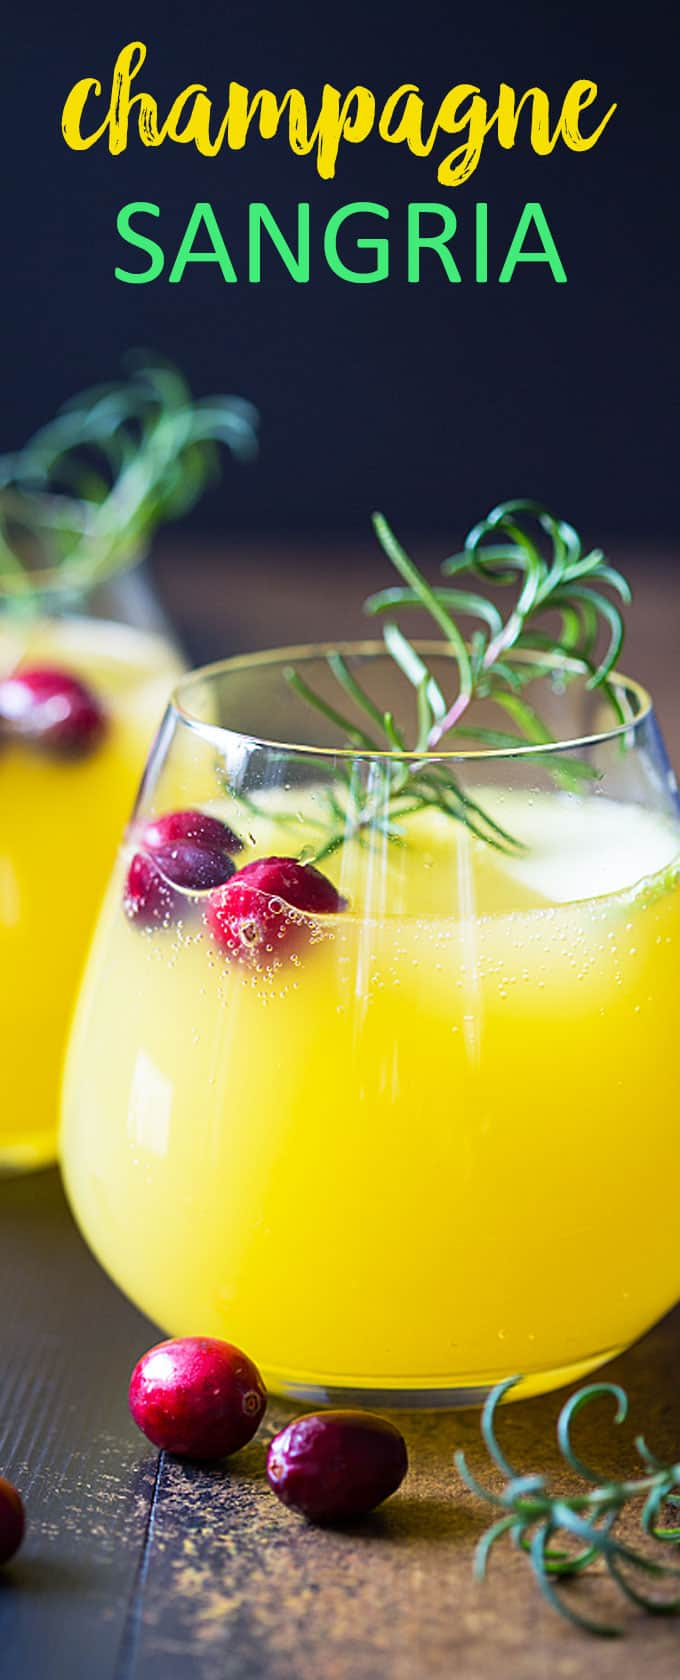 Champagne Sangria - A sweet, savory and tart sangria with rosemary simple syrup.